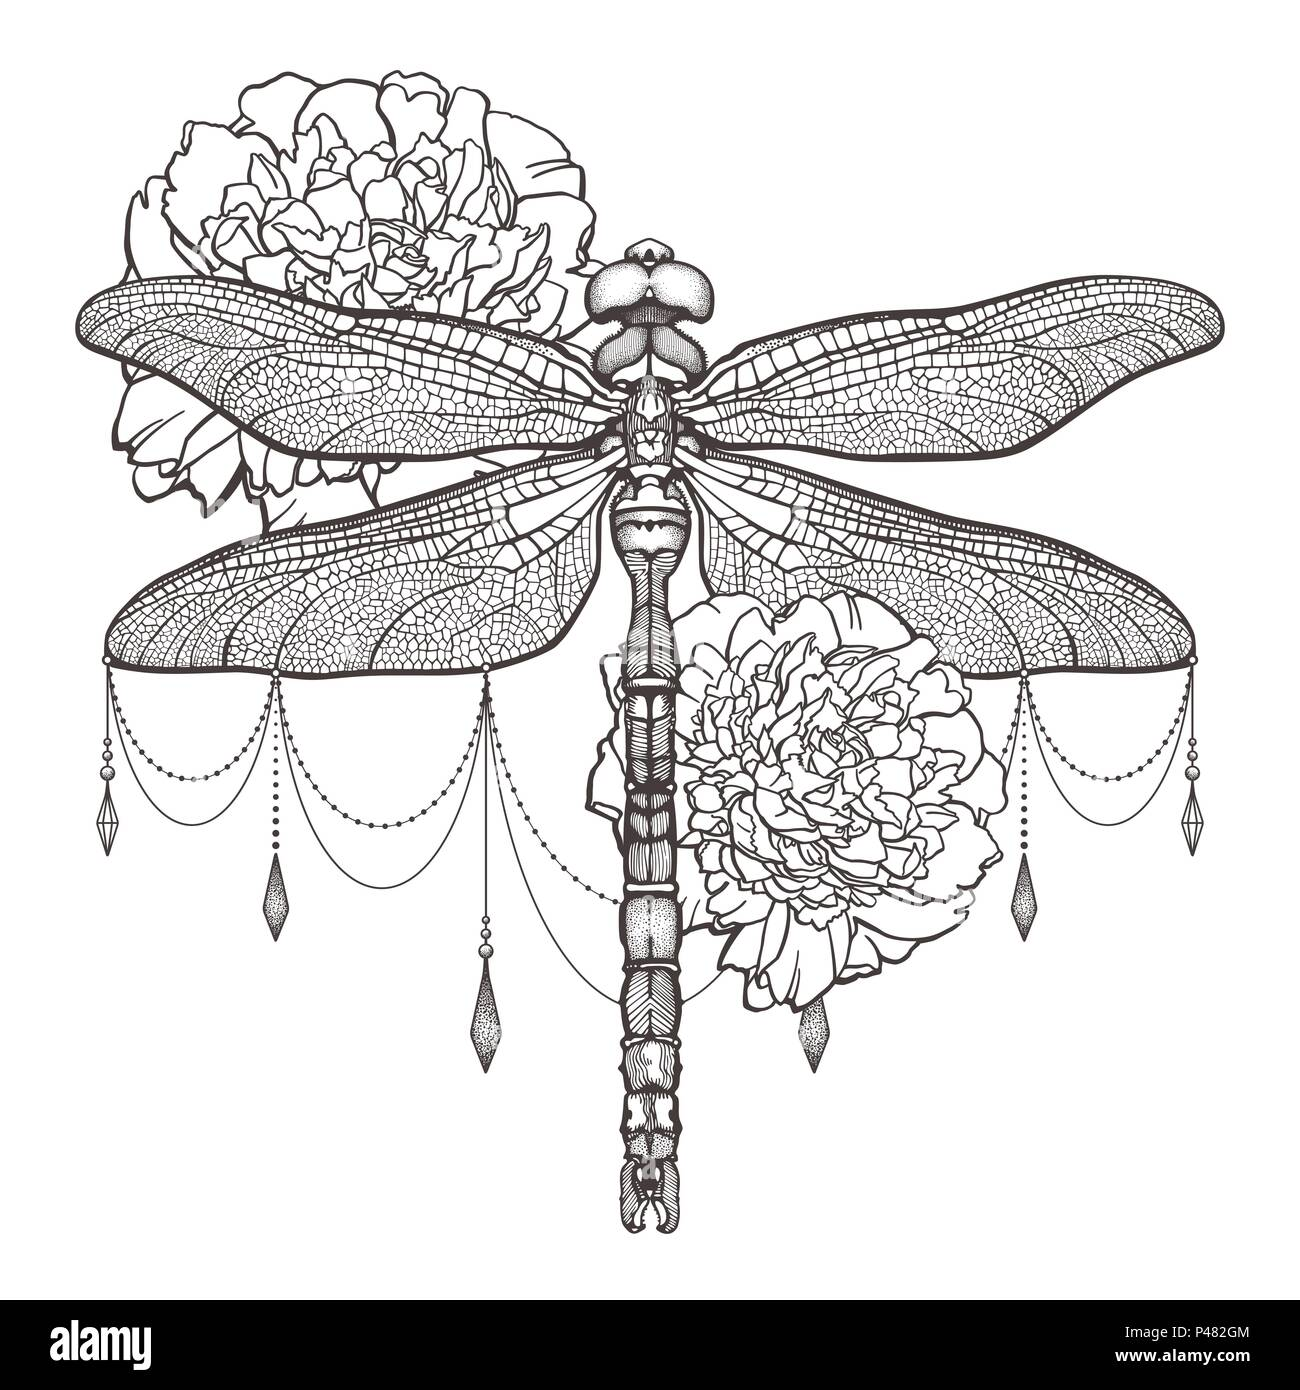 35ad54b85 Black dragonfly Aeschna Viridls and peonies. T-shirt design. Isolated on  white background